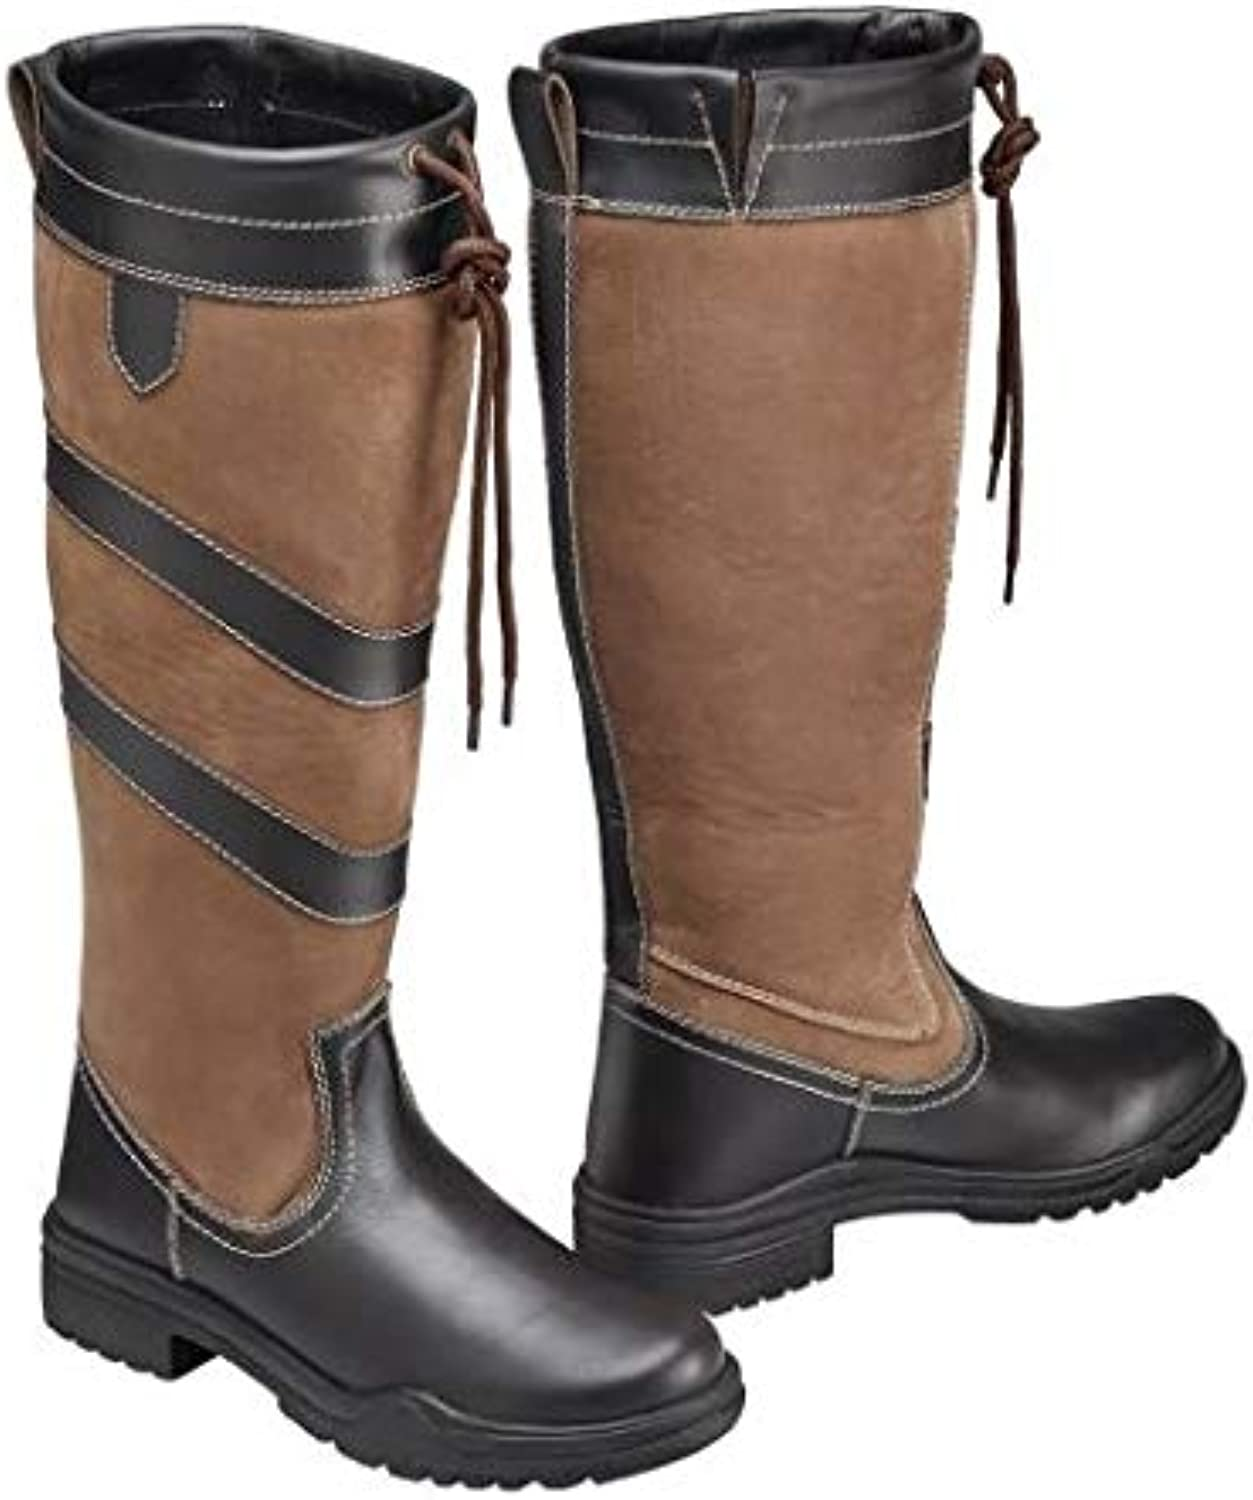 Rio Harry Hall Long Country Boot